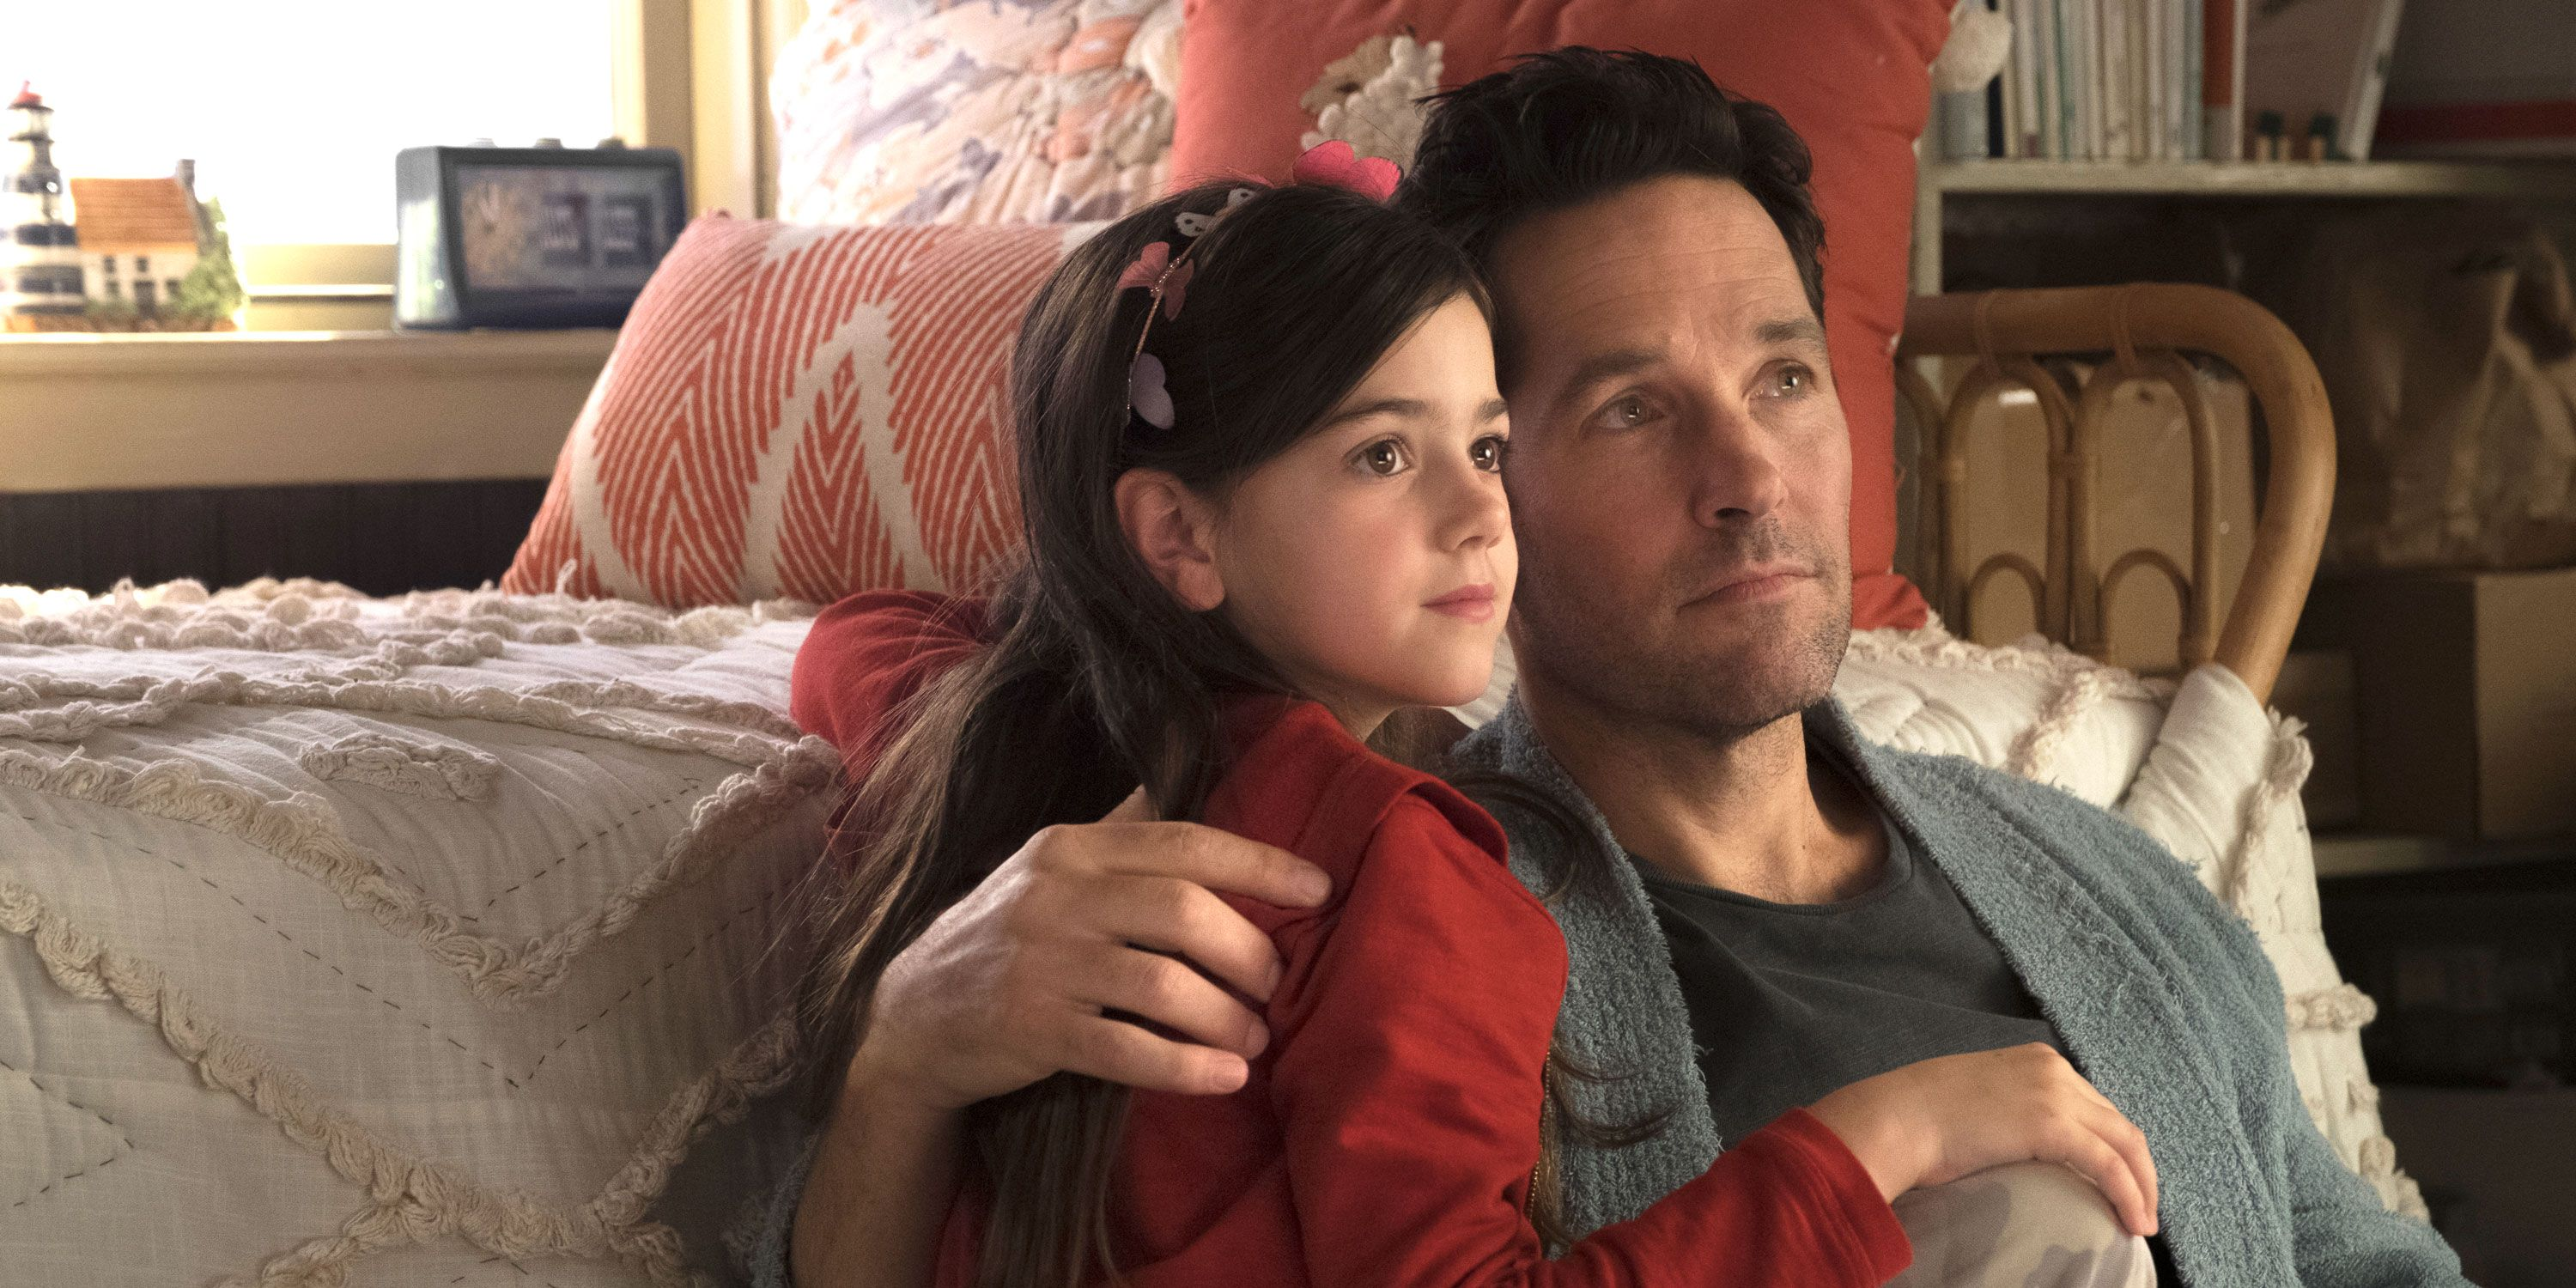 Ant-man and The Wasp, Cassie Lang, Abby Ryder Fortson, and Ant-Man/Scott Lang, Paul Rudd